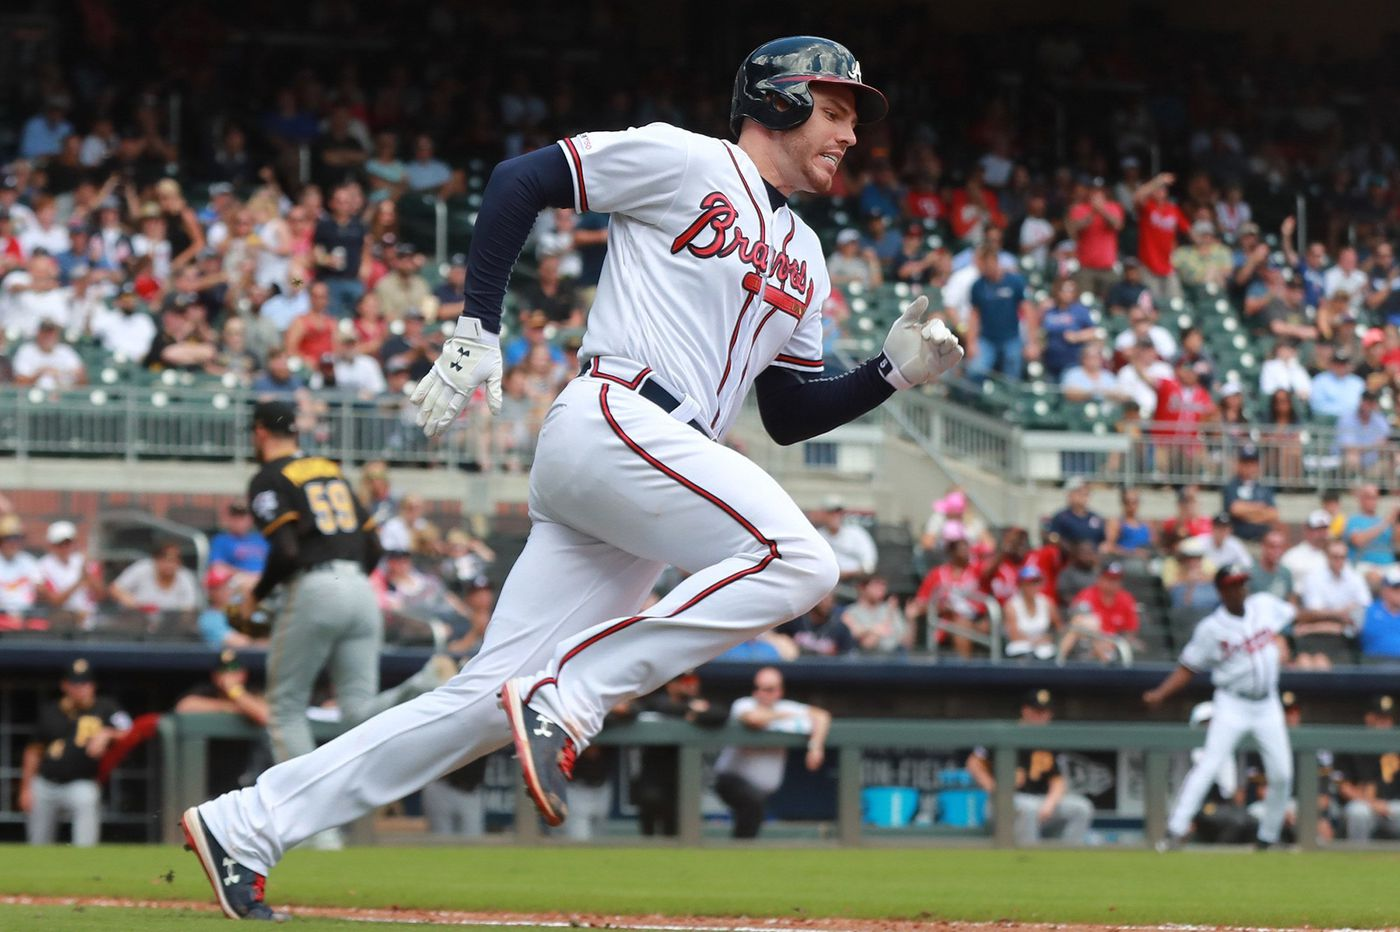 Phillies will have their hands full with red-hot Braves offense | Extra Innings